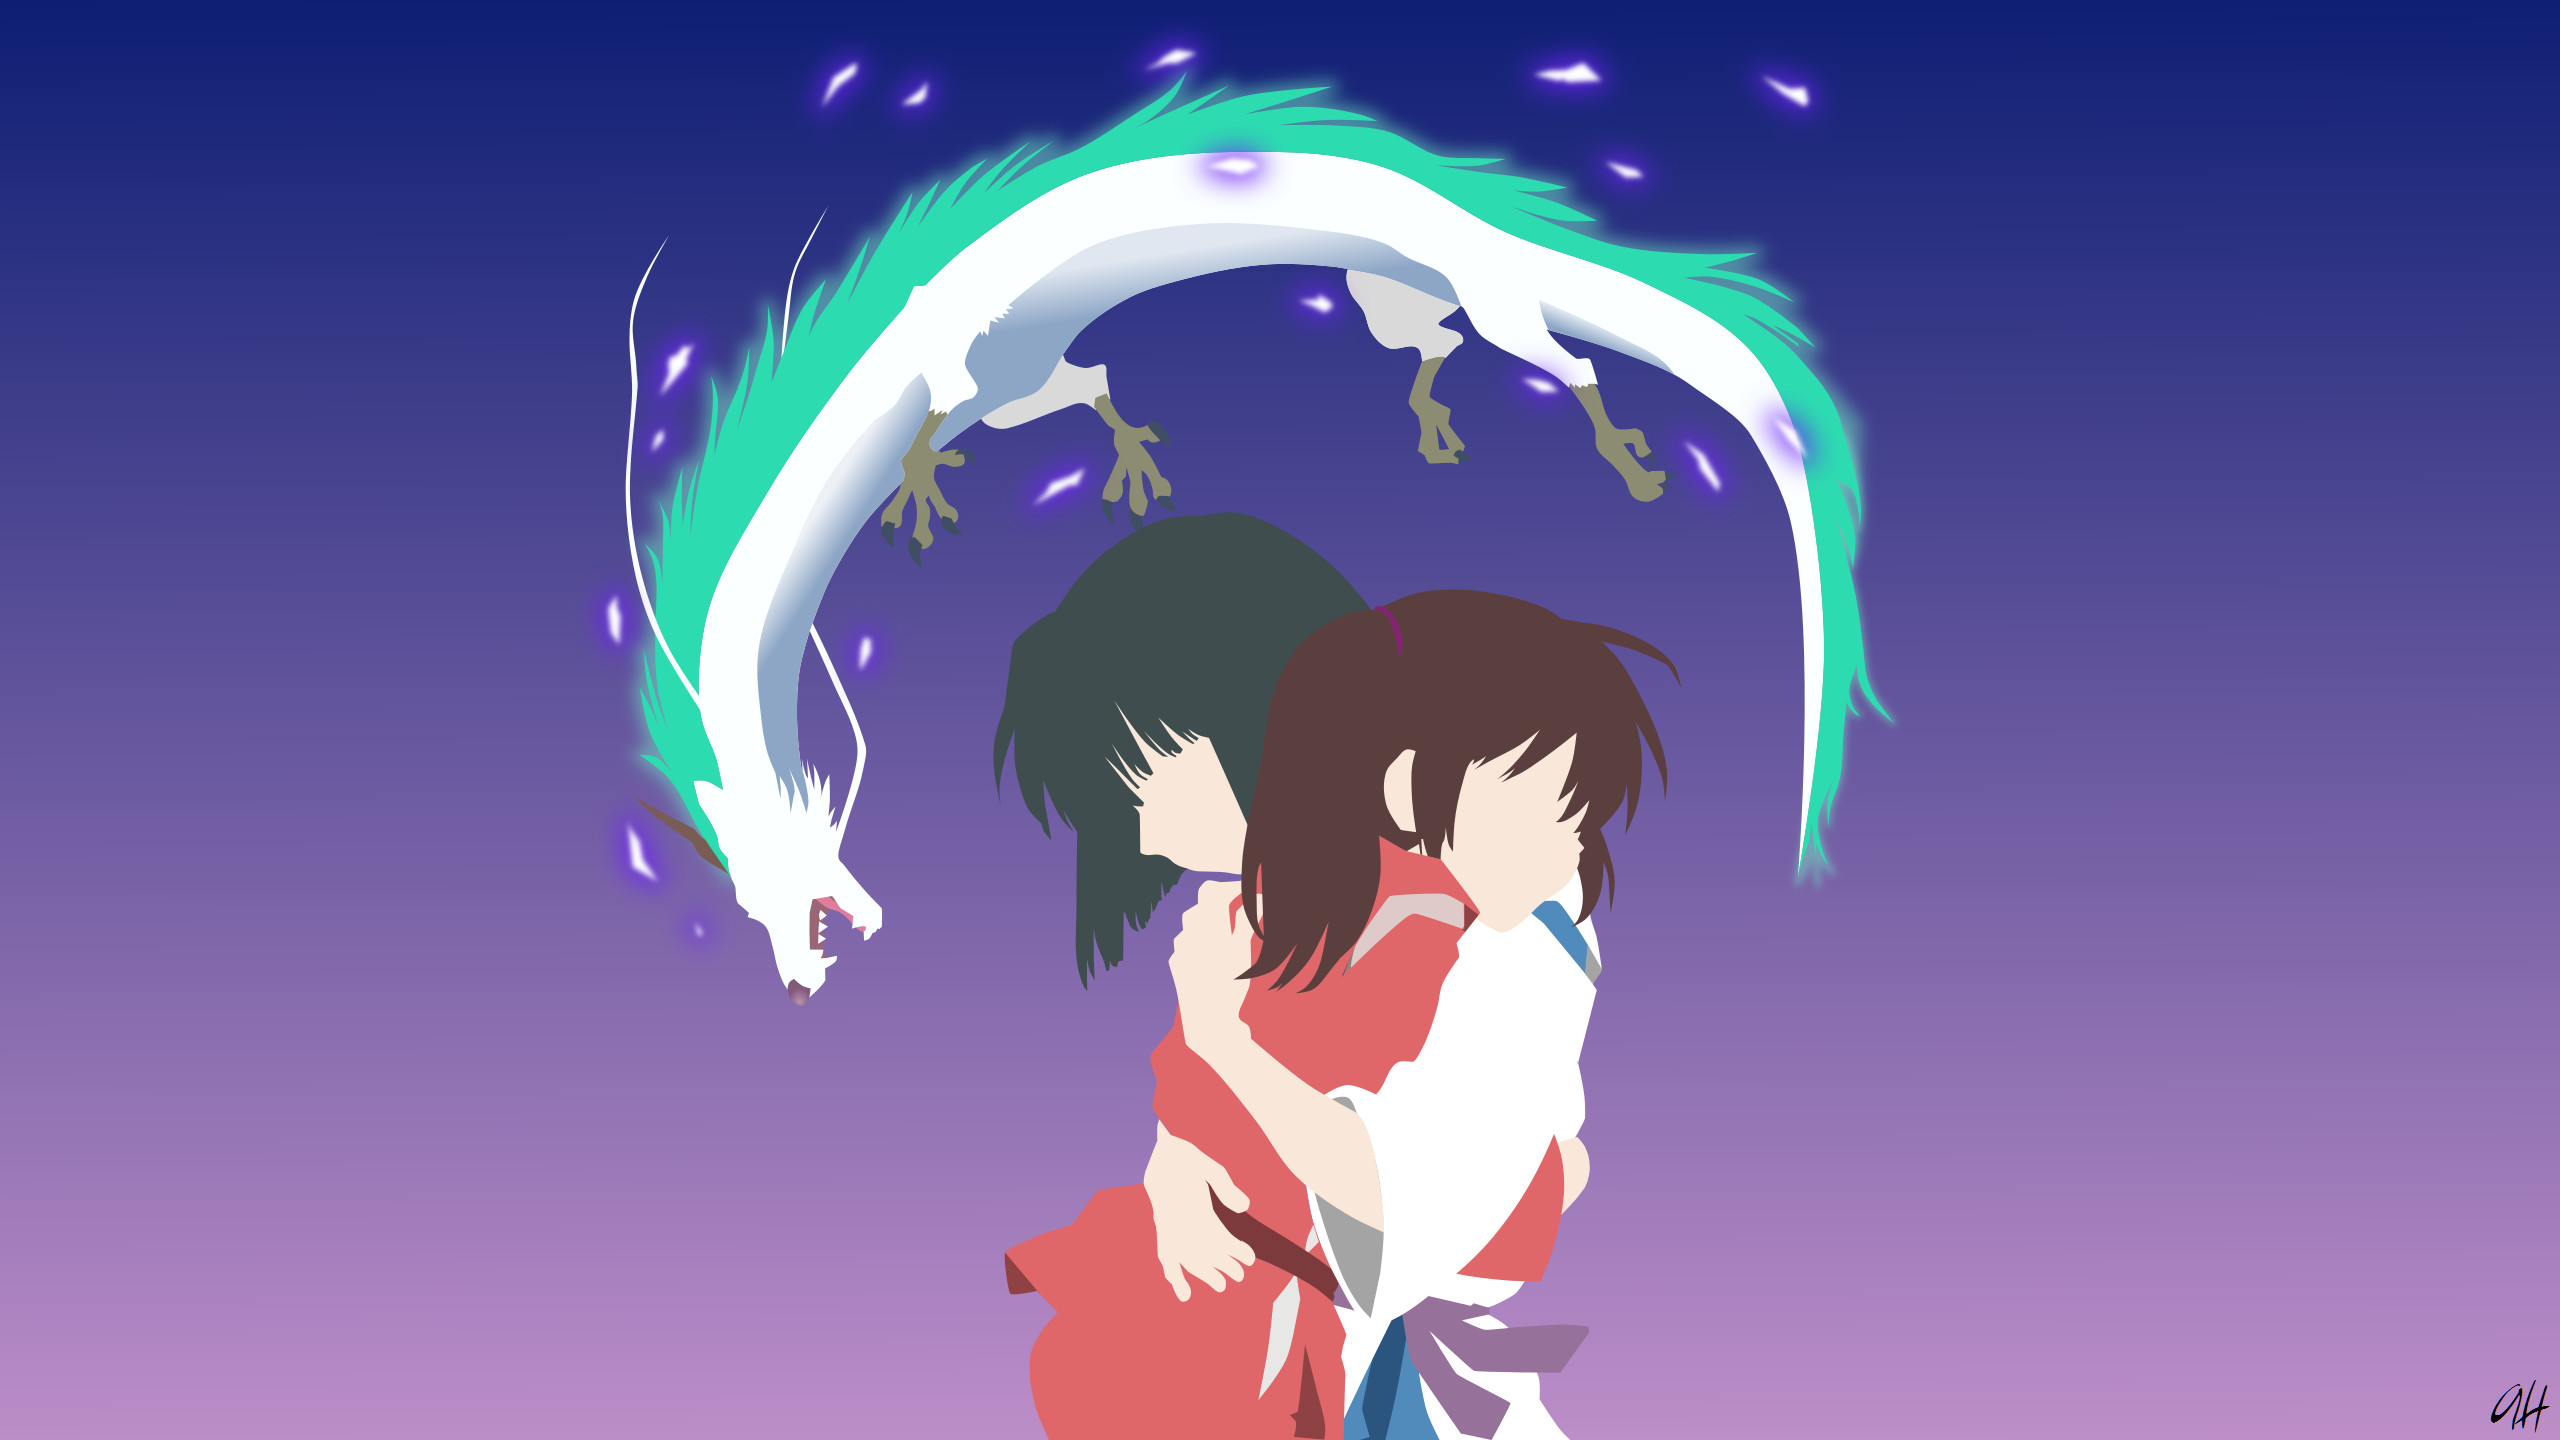 2560x1440 Spirited Away Minimalist Computer Wallpapers, Desktop Backgrounds .